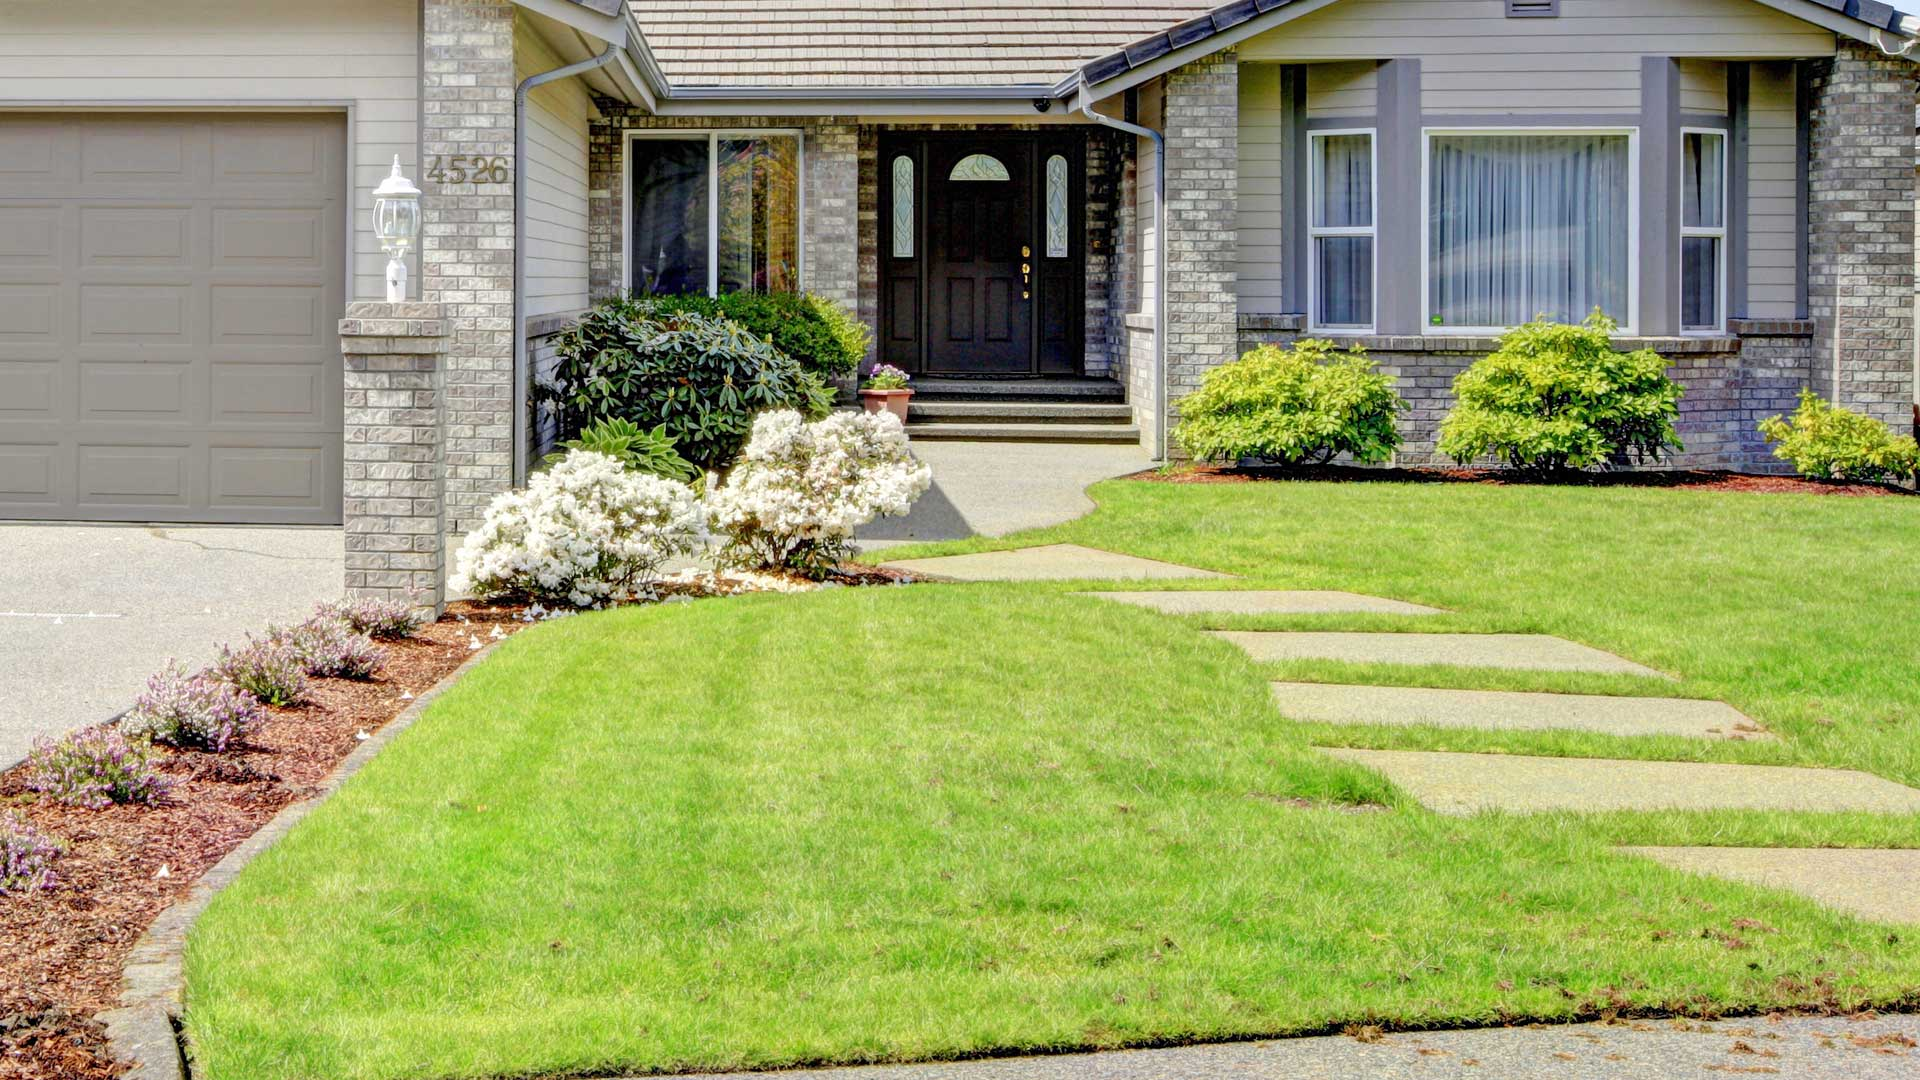 Mowed lawn and maintained landscaping by J&C Lawn Care.